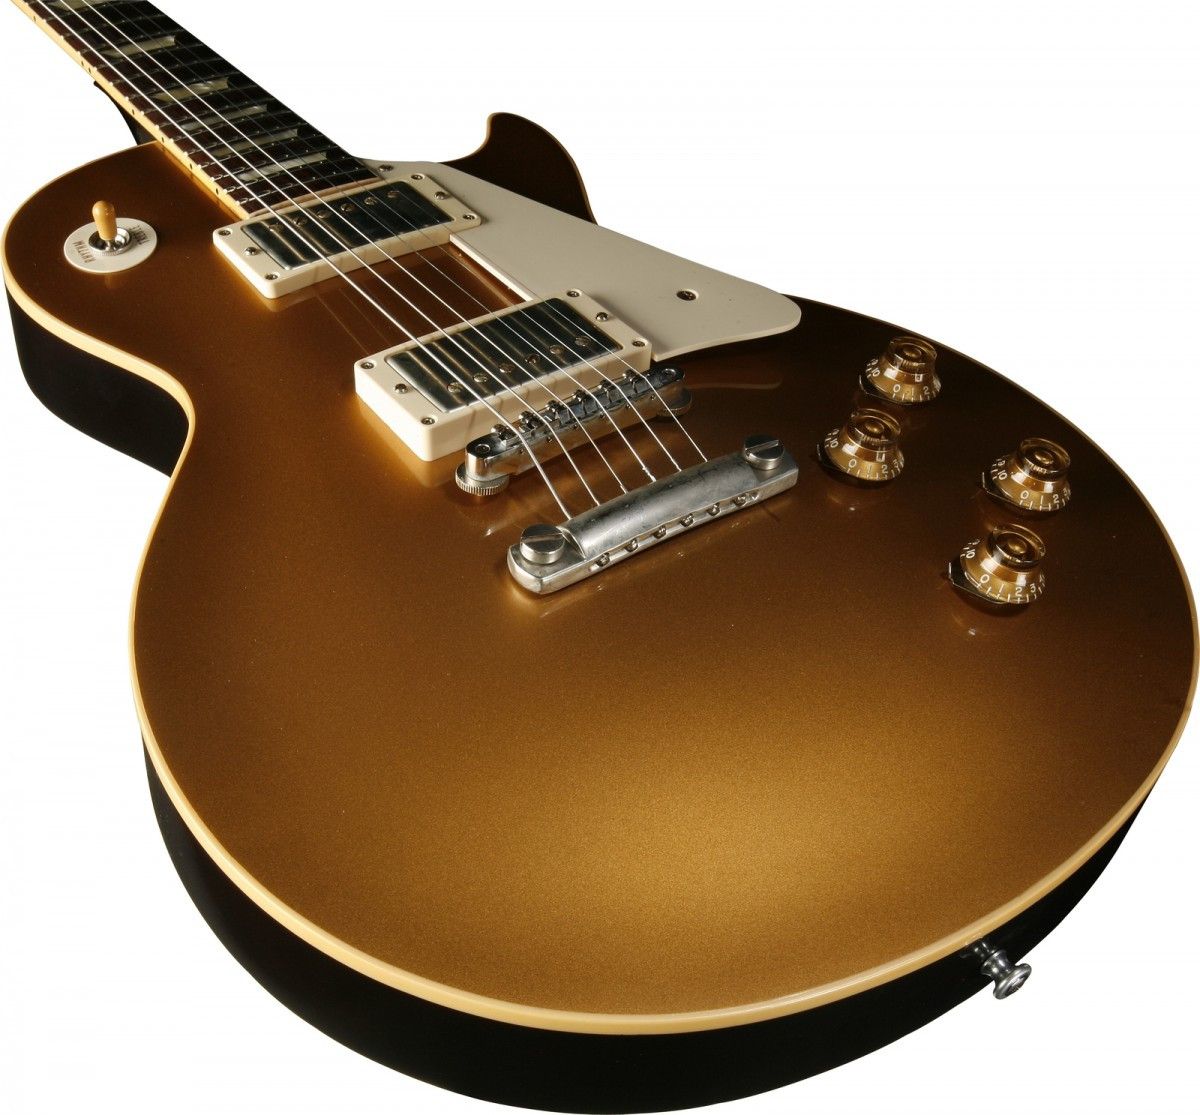 Gibson Les Paul Gold top Perfecto Gibson Les Paul Gold top 1957 Custom Shop Vos Antique Of 45  Innovador Gibson Les Paul Gold top